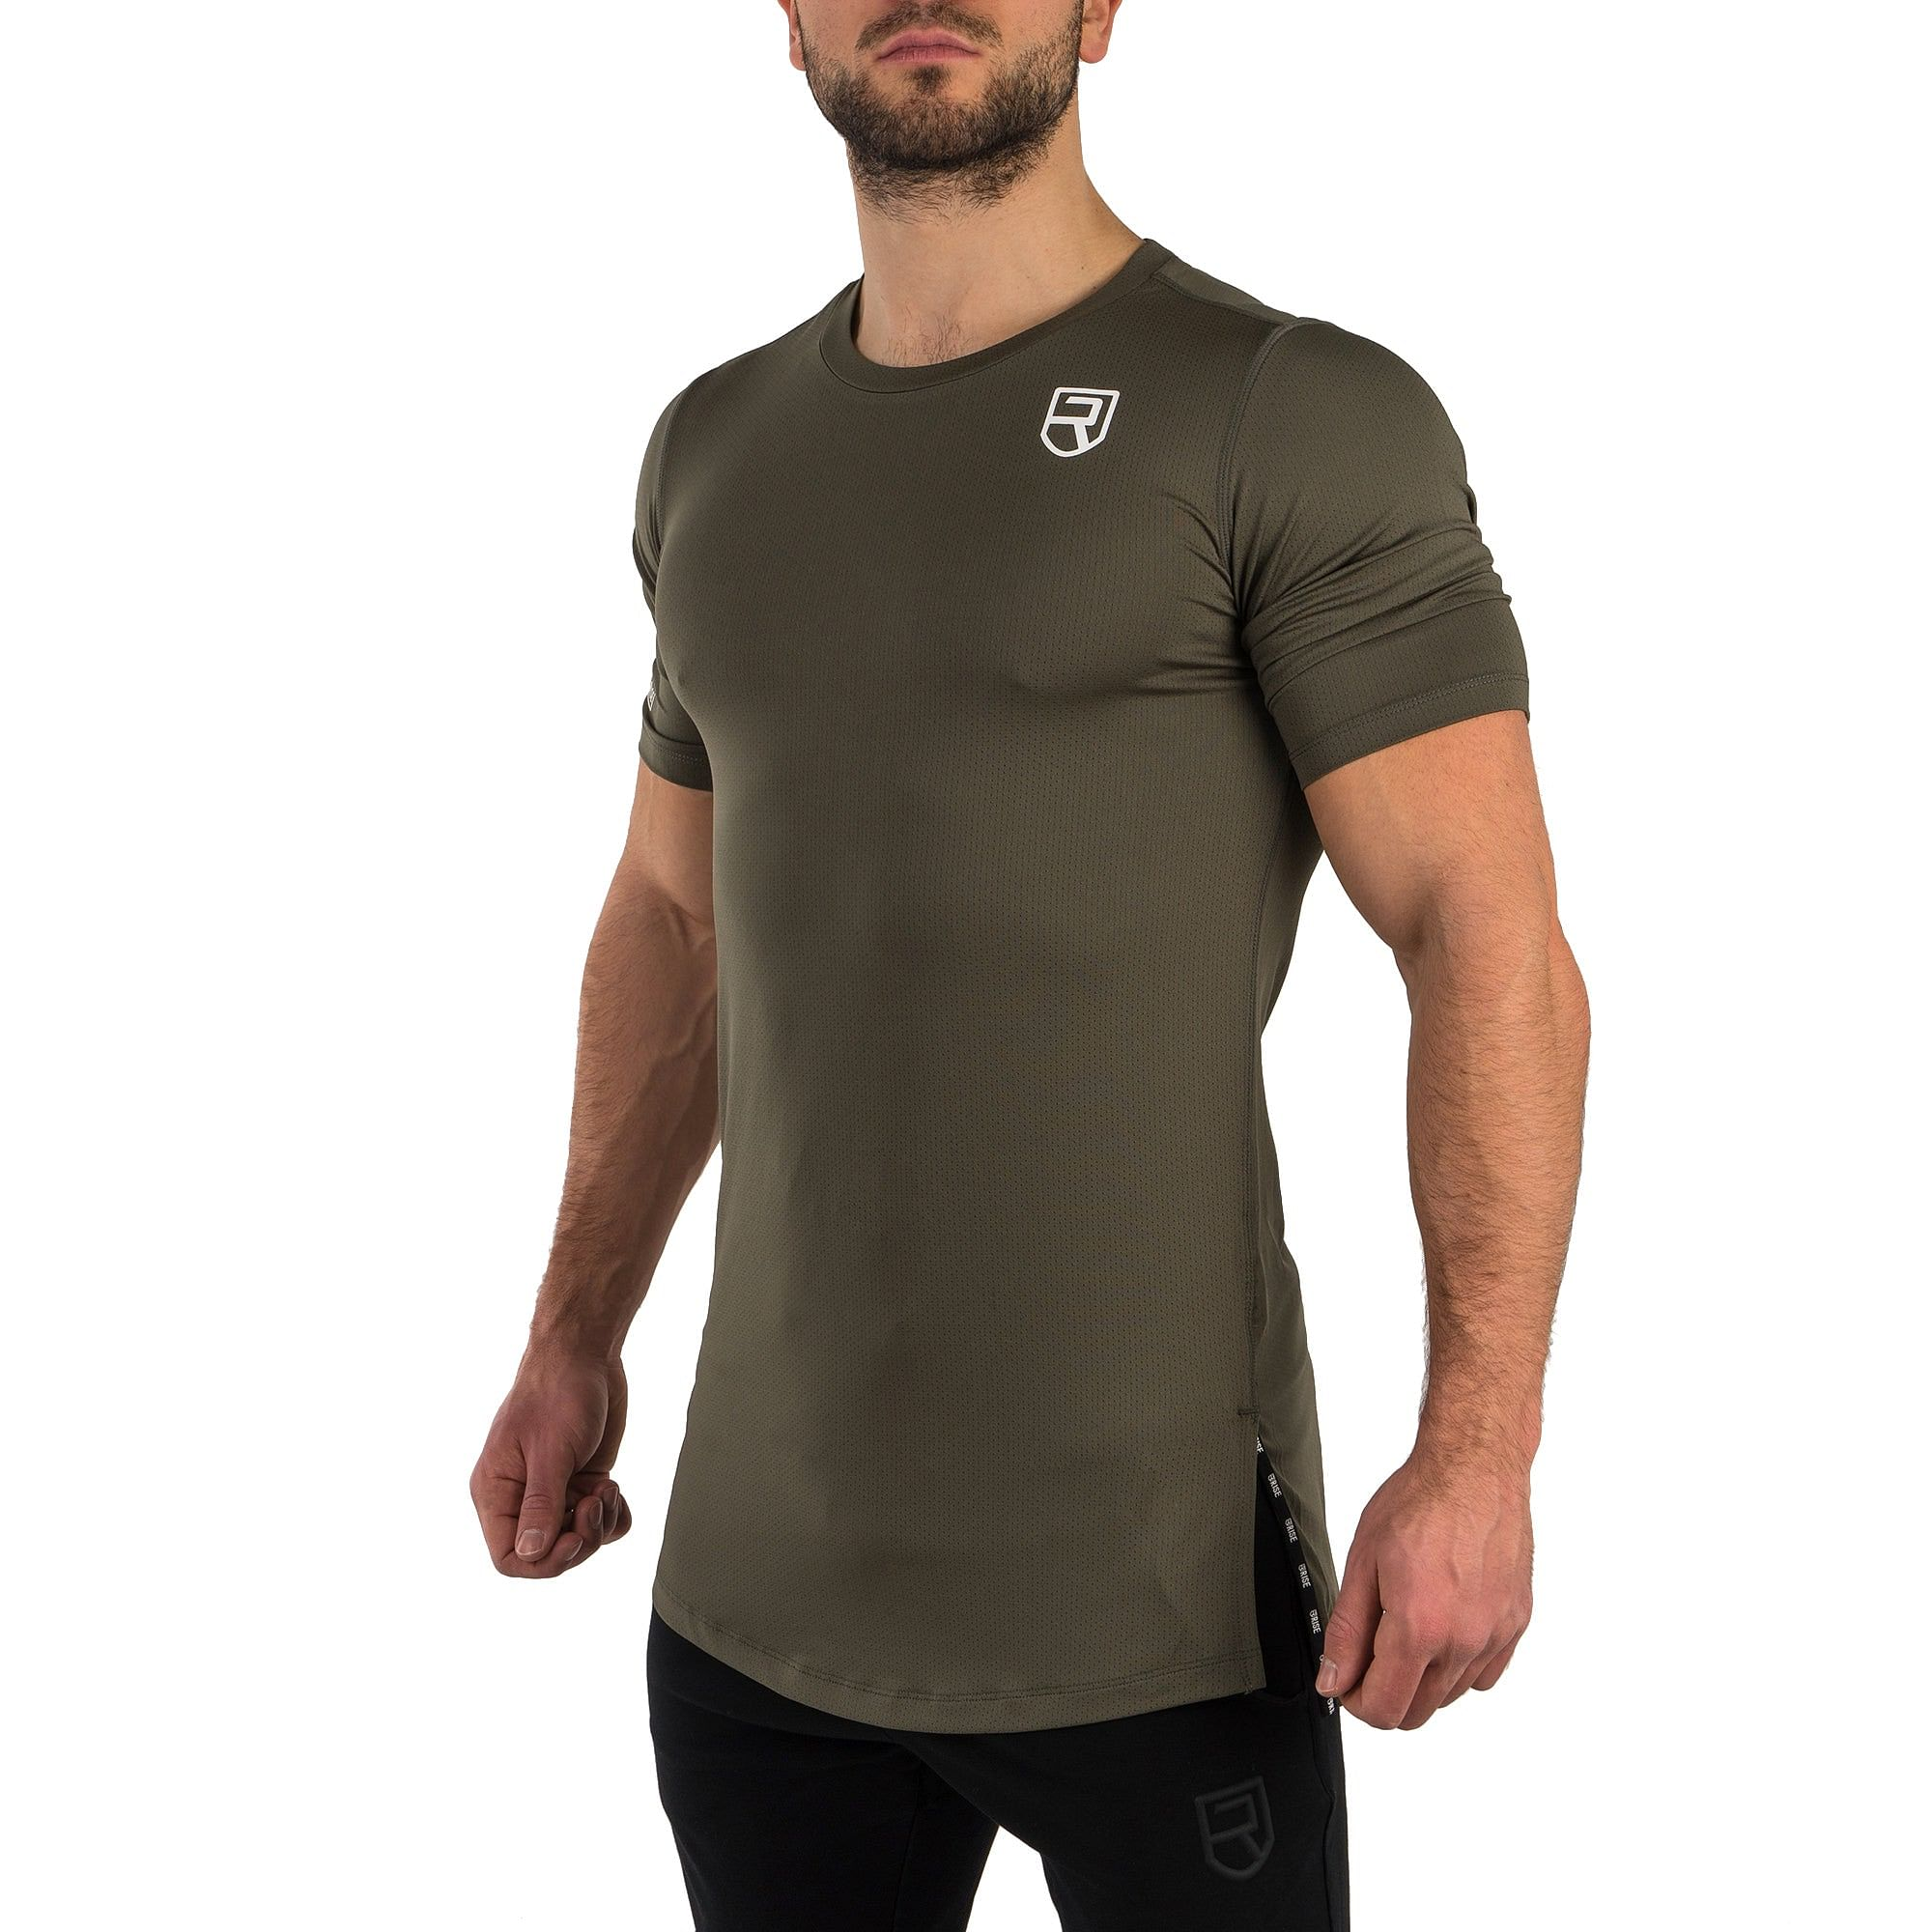 Level T-Shirt - Army Green